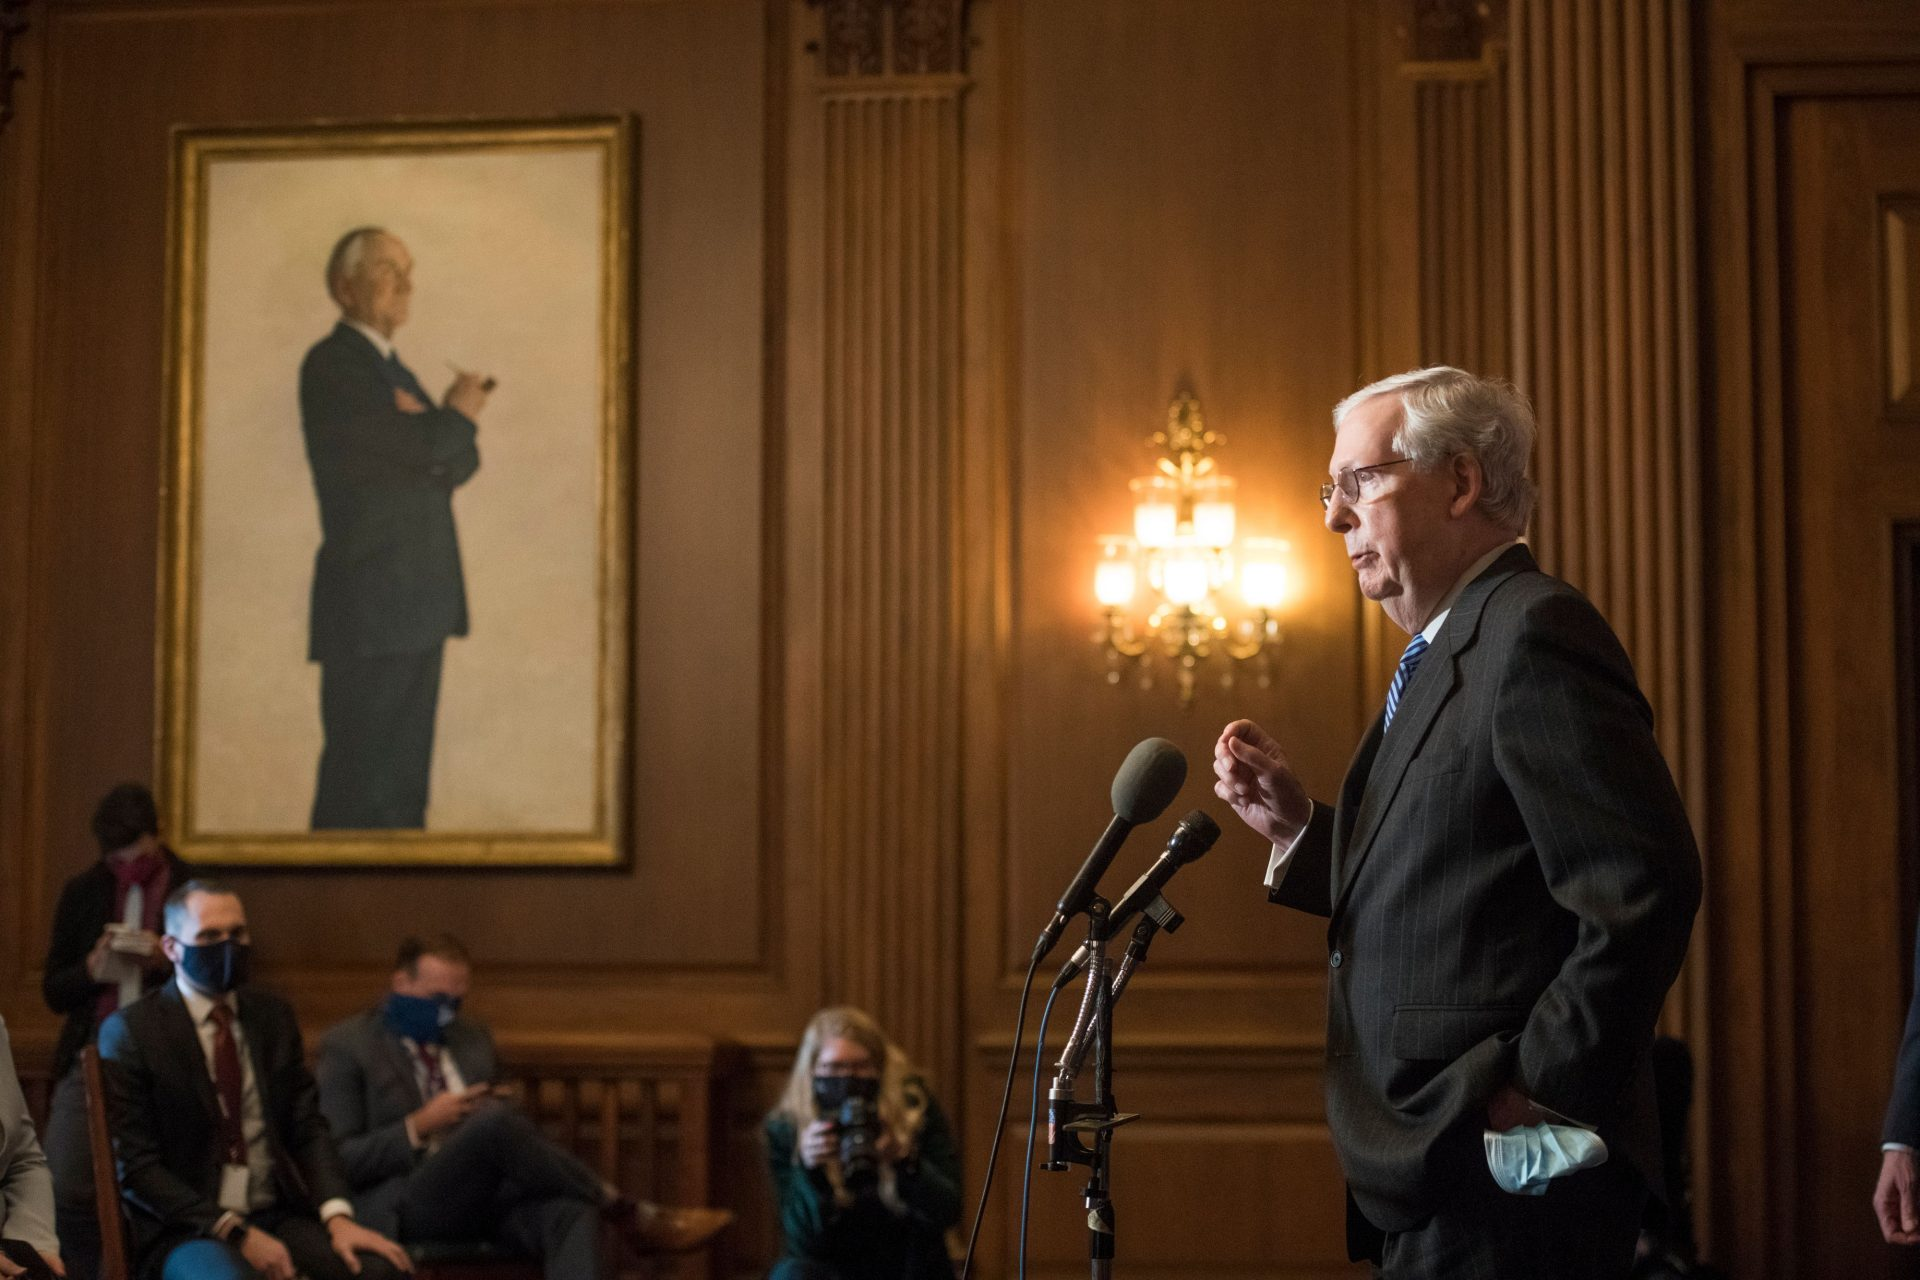 Mandatory Credit: Photo by Shutterstock (11553732bf)United States Senate Majority Leader Mitch McConnell (Republican of Kentucky) speaks during a news conference following the weekly meeting with the Senate Republican caucus at the U.